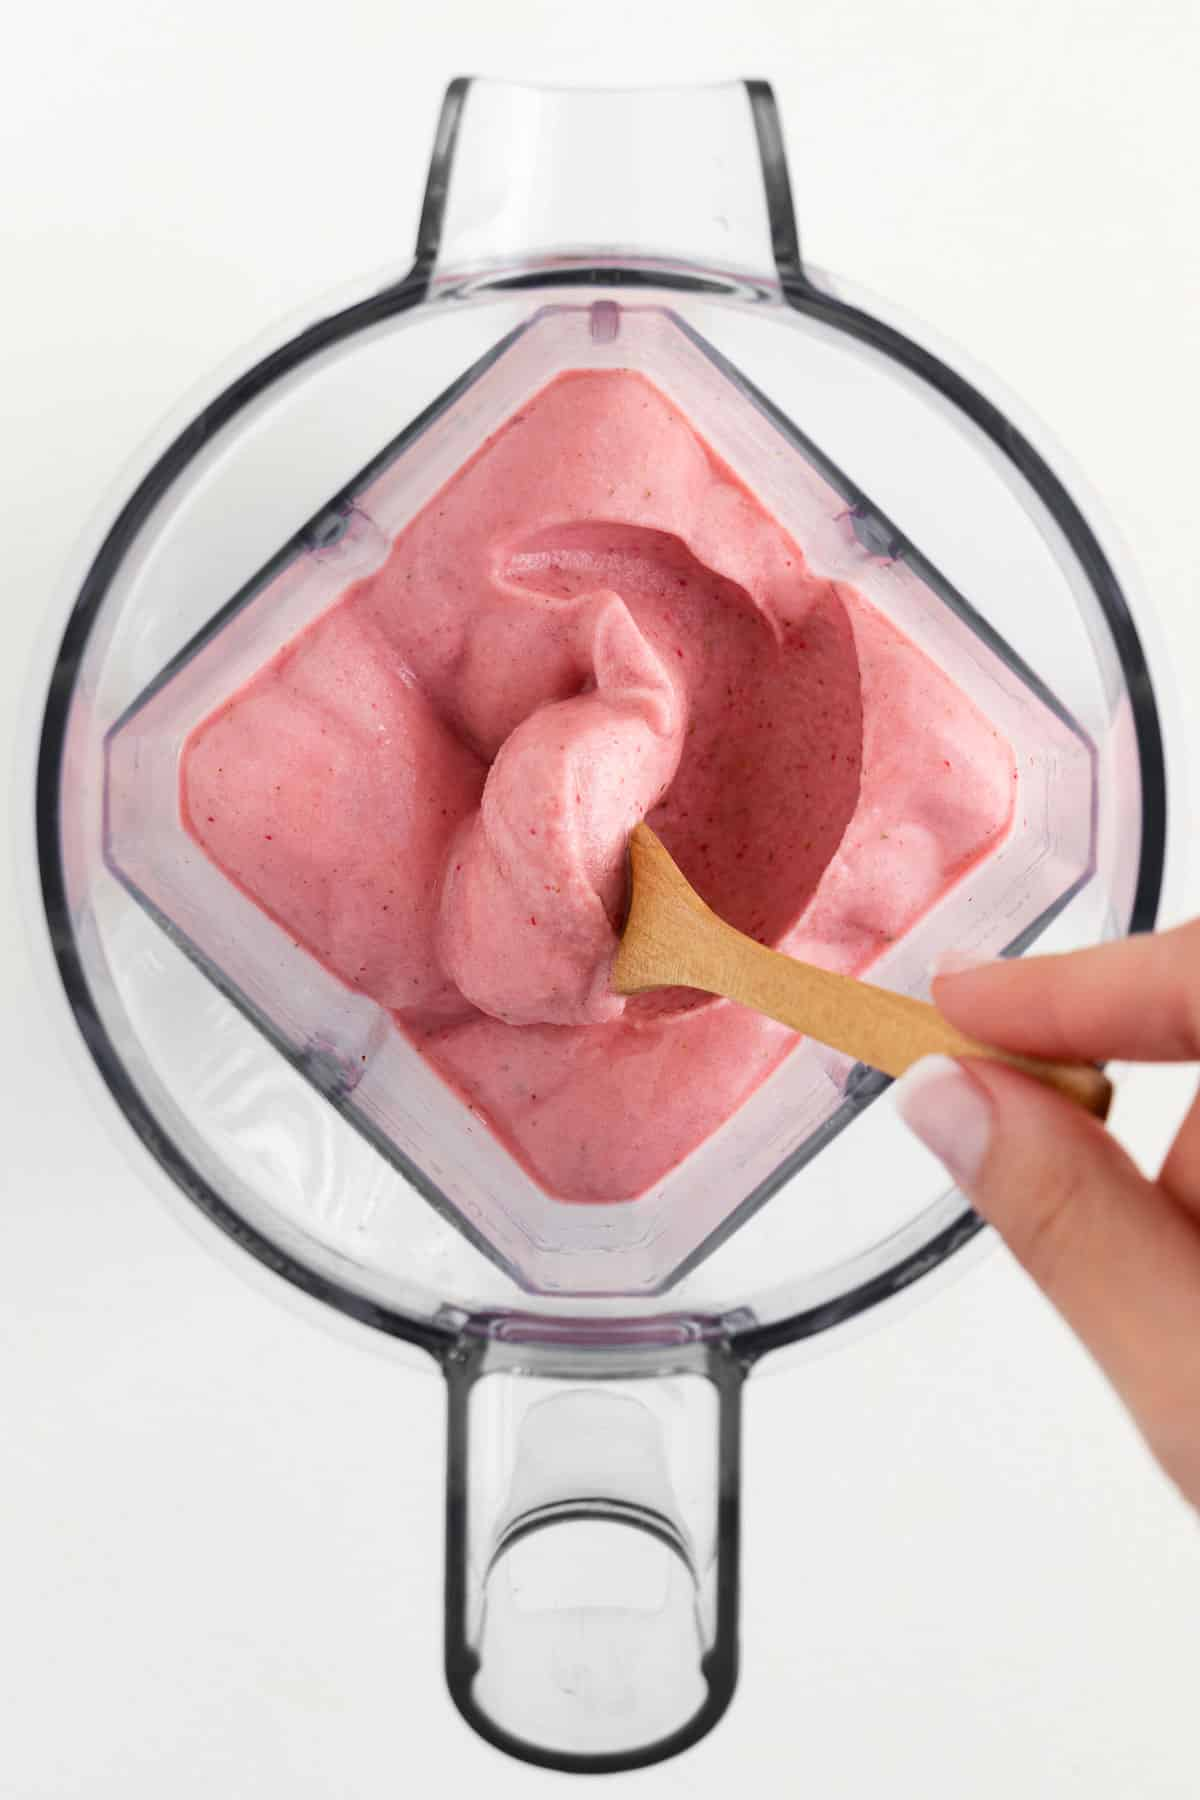 a hand holding a spoon scooping a thick pink smoothie inside a blender